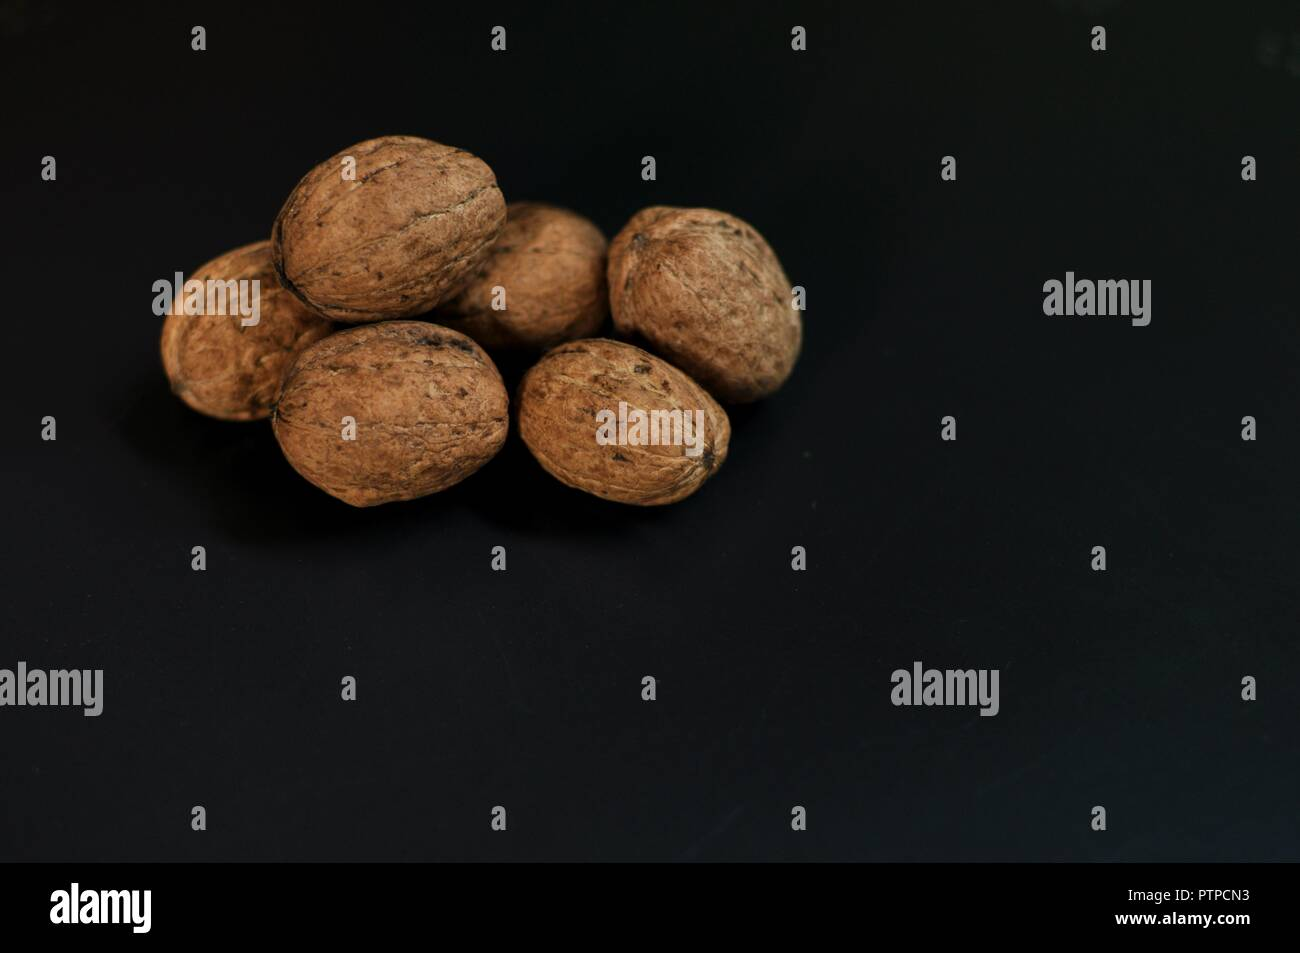 Heap (pile, stack) of nuts in shell isolated on black background with copy space. Underexposed, front side view - Stock Image